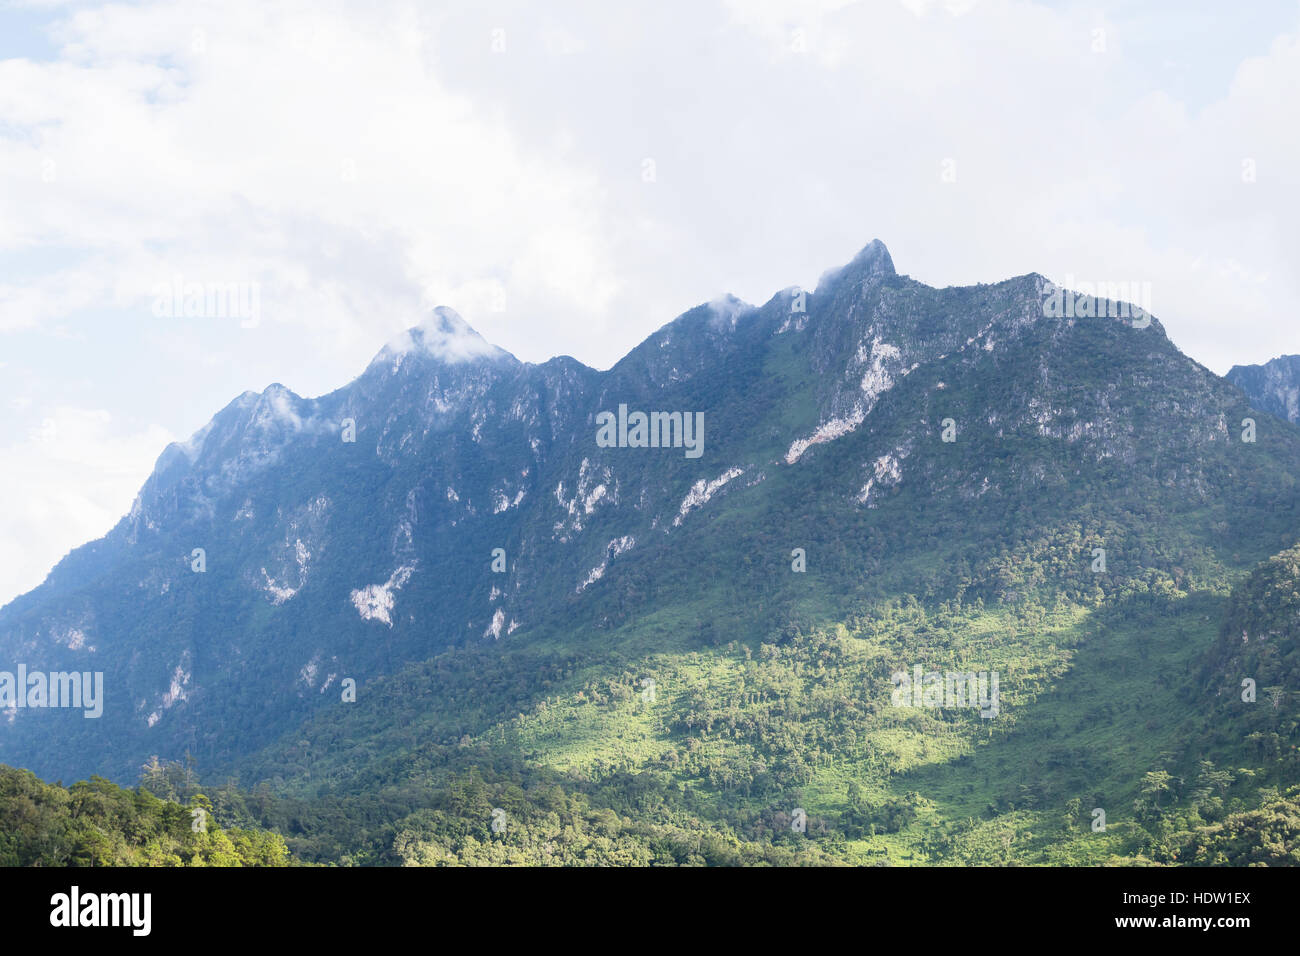 cloud cover on mountains - Stock Image